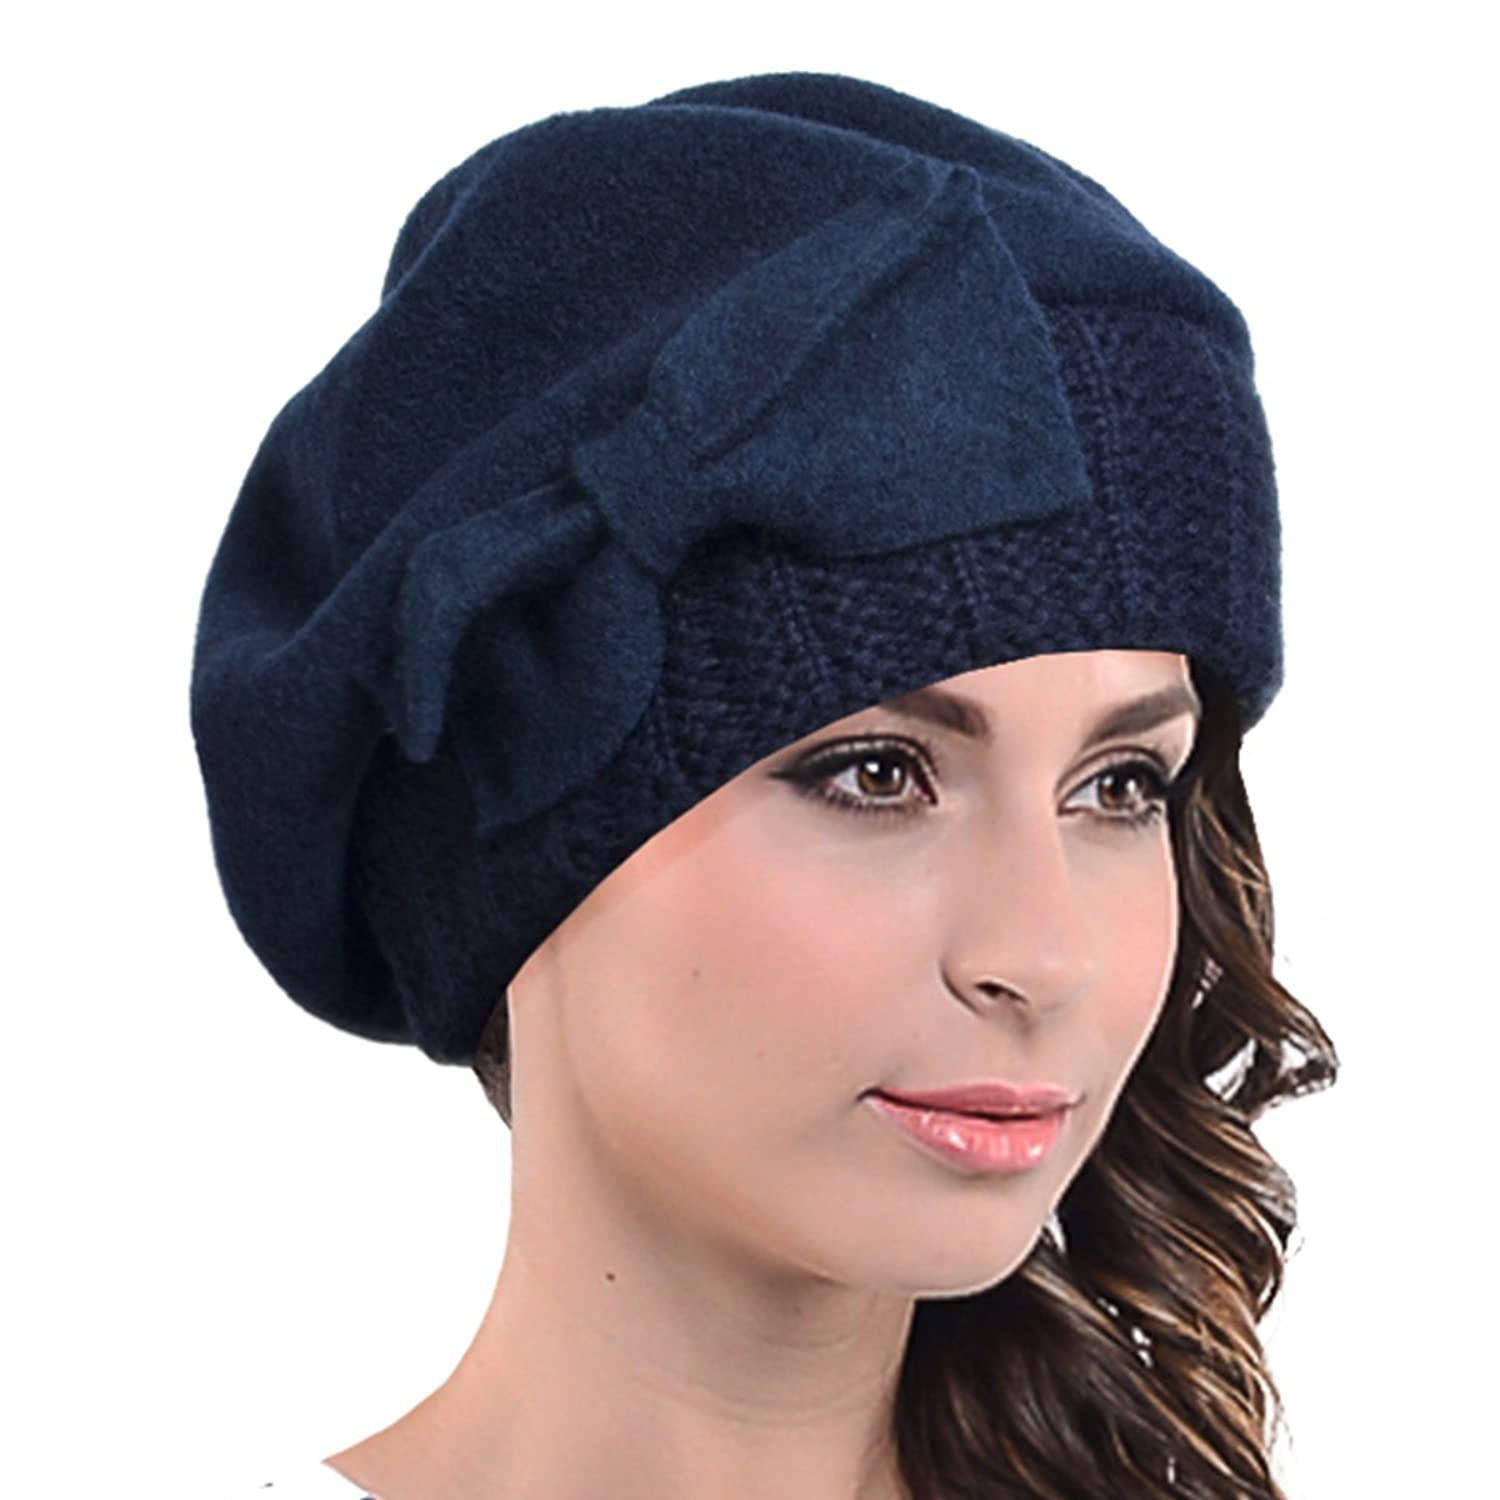 1940s Hats History Lady French Beret Wool Beret Chic Beanie Winter Hat Jf-br034 $21.99 AT vintagedancer.com